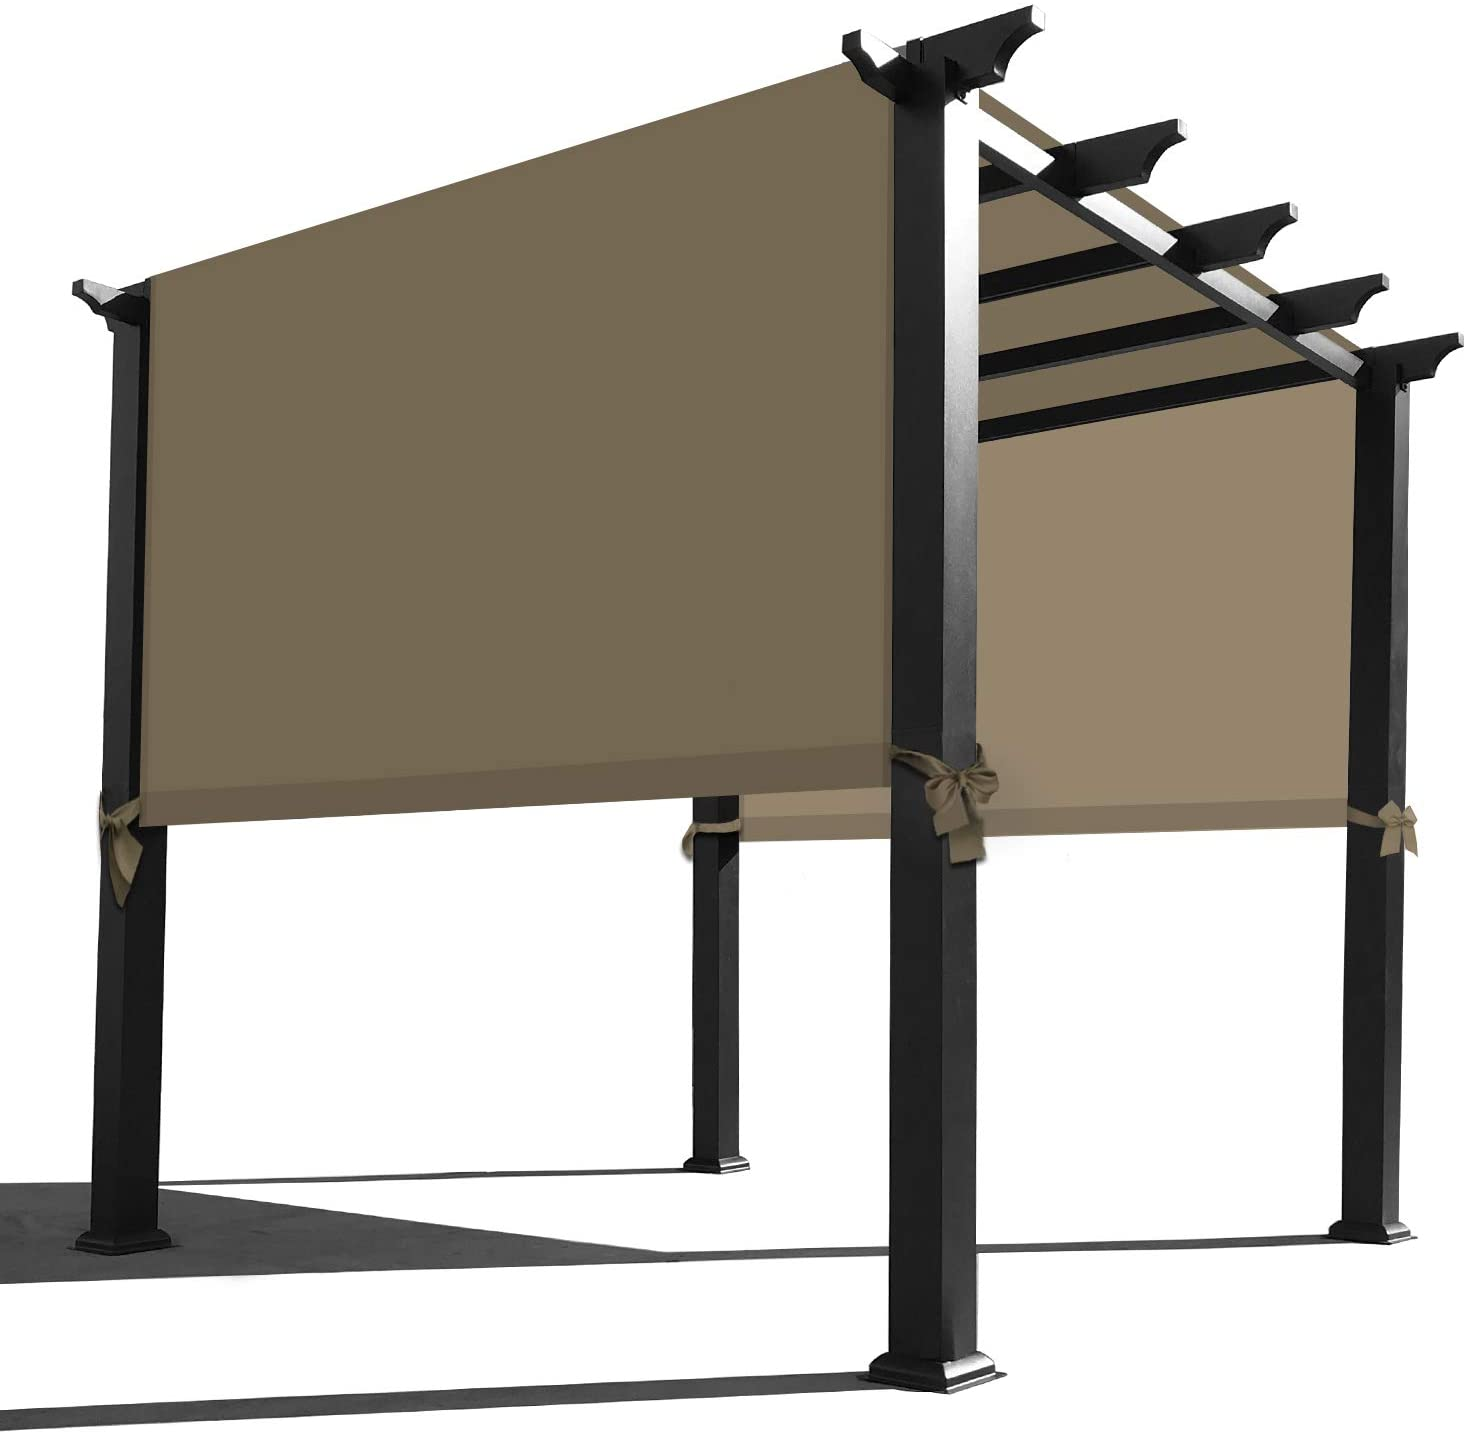 Pergola Replacement Canopy Universal Replacement Canopy for Pergola 12 L x 9 W, Sand Alion Home Waterproof Pergola Covers